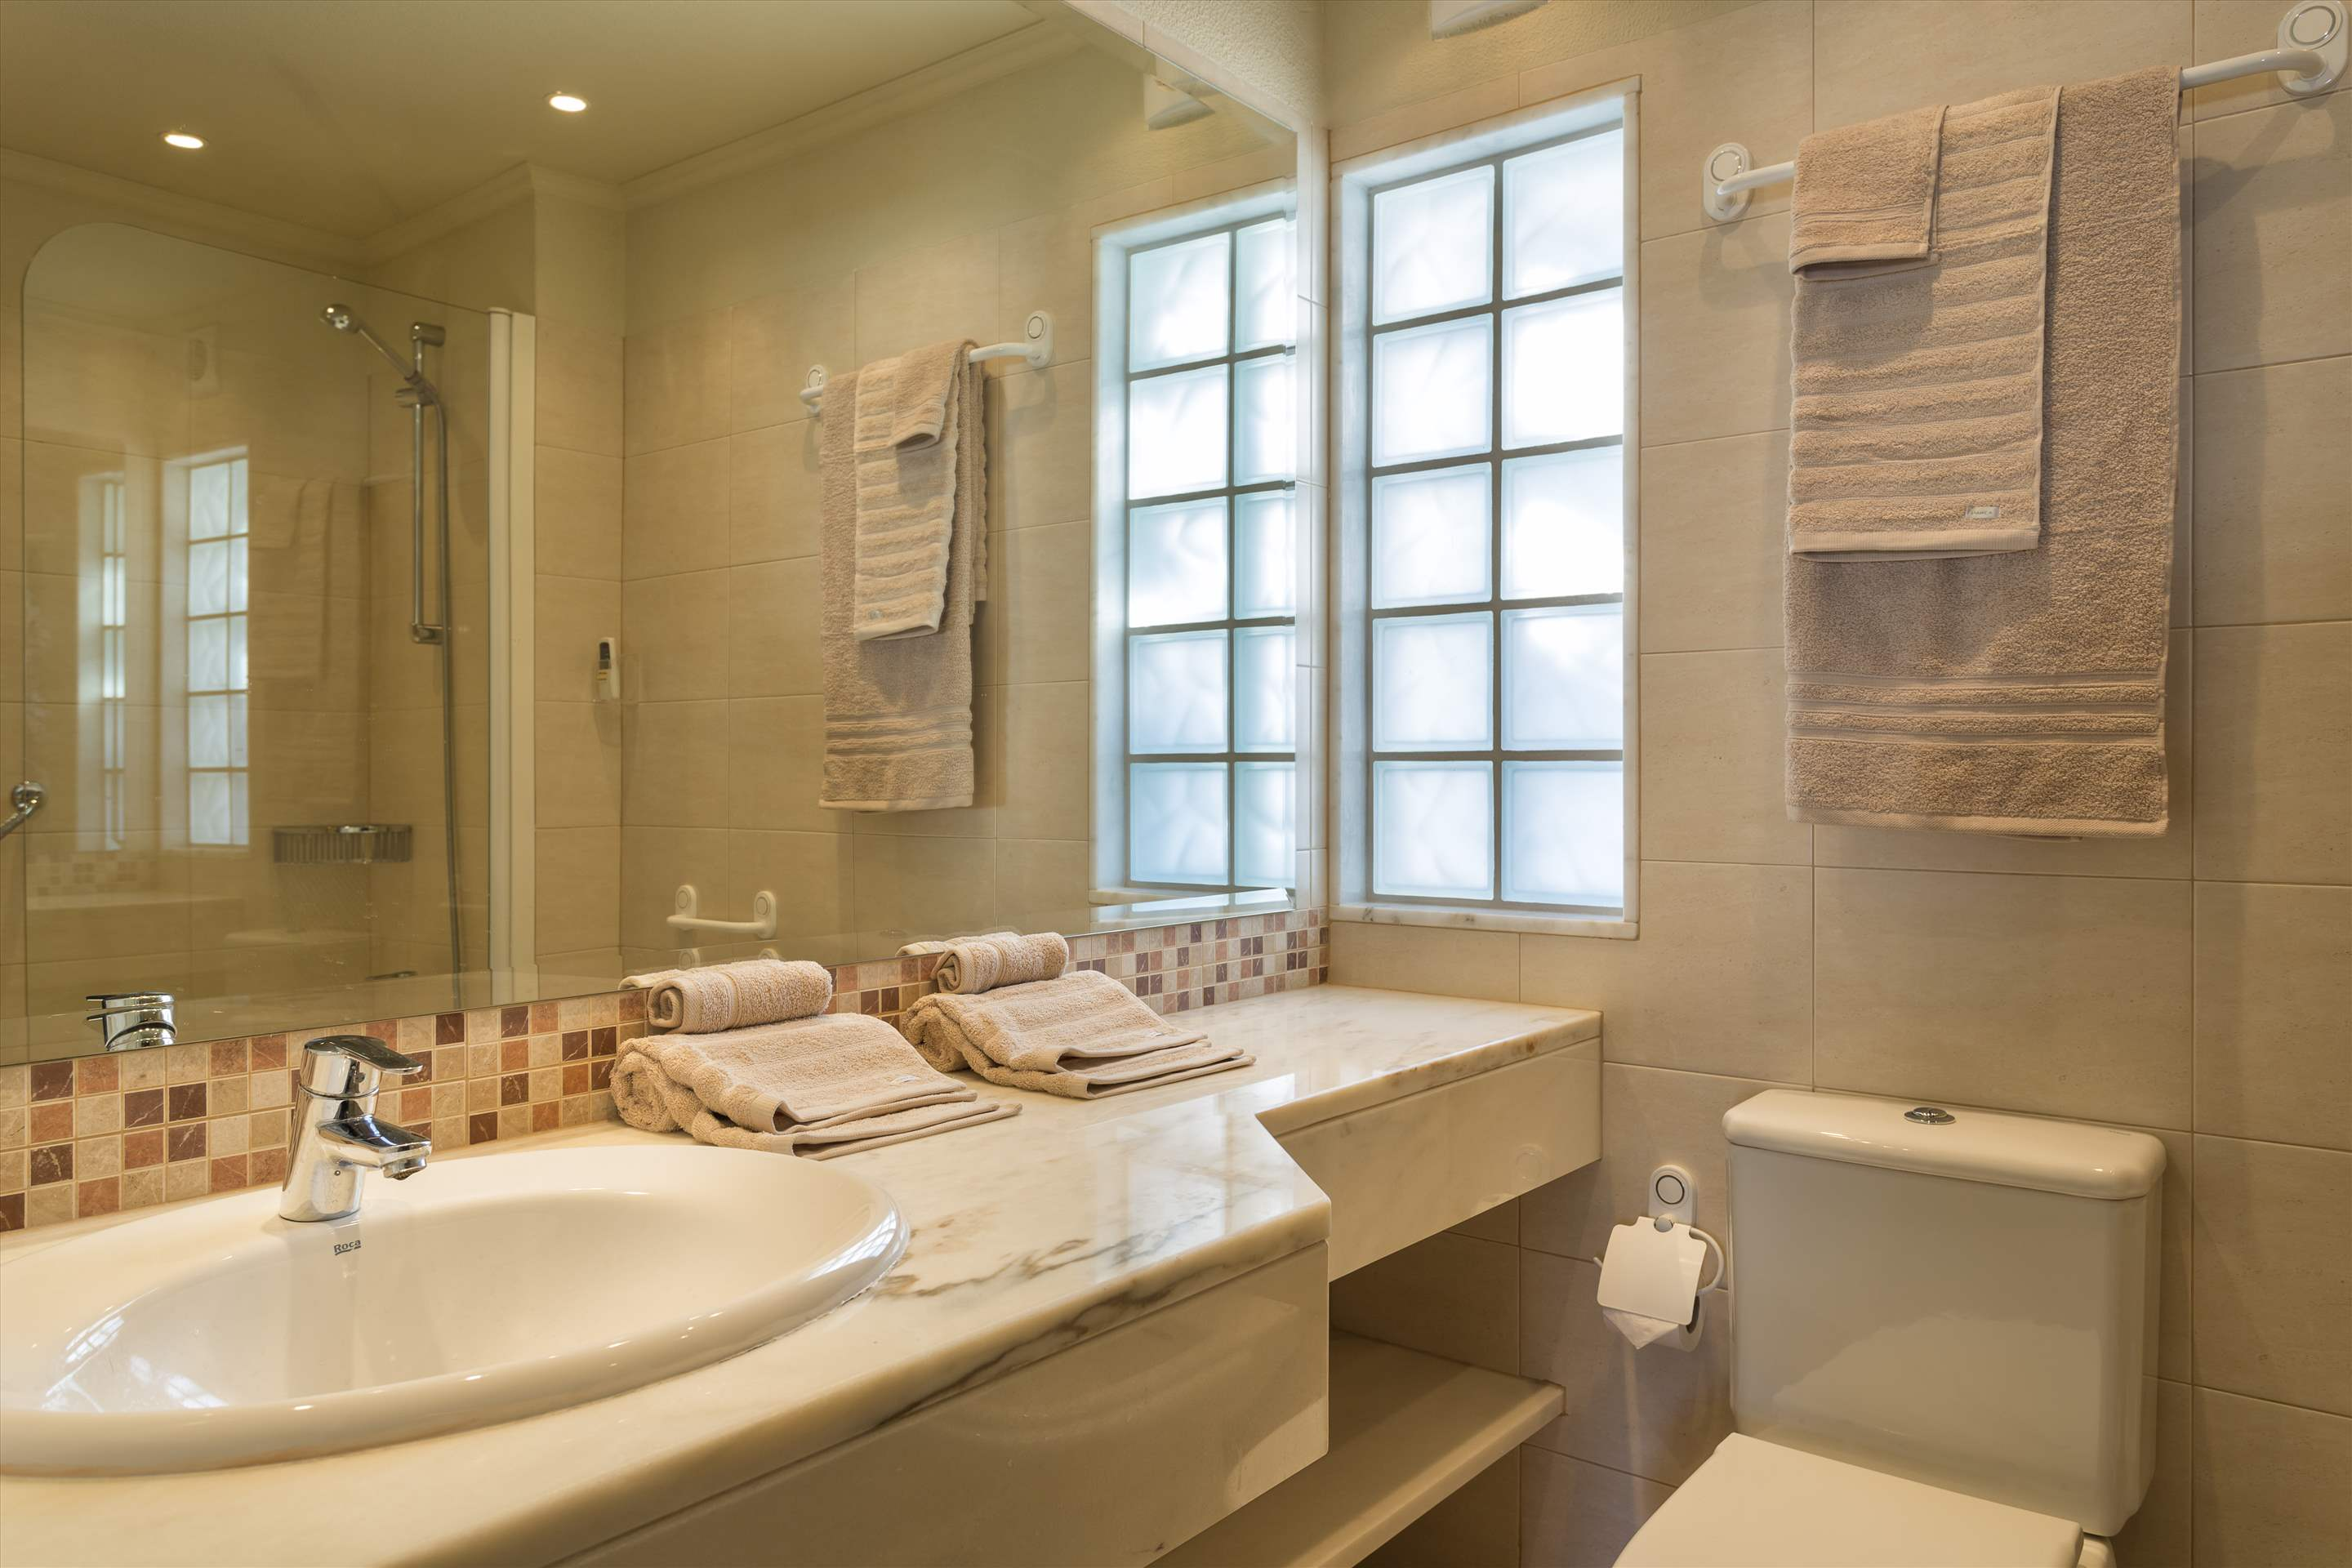 Casa Bella, 3 bedroom apartment in Vale do Lobo, Algarve Photo #12